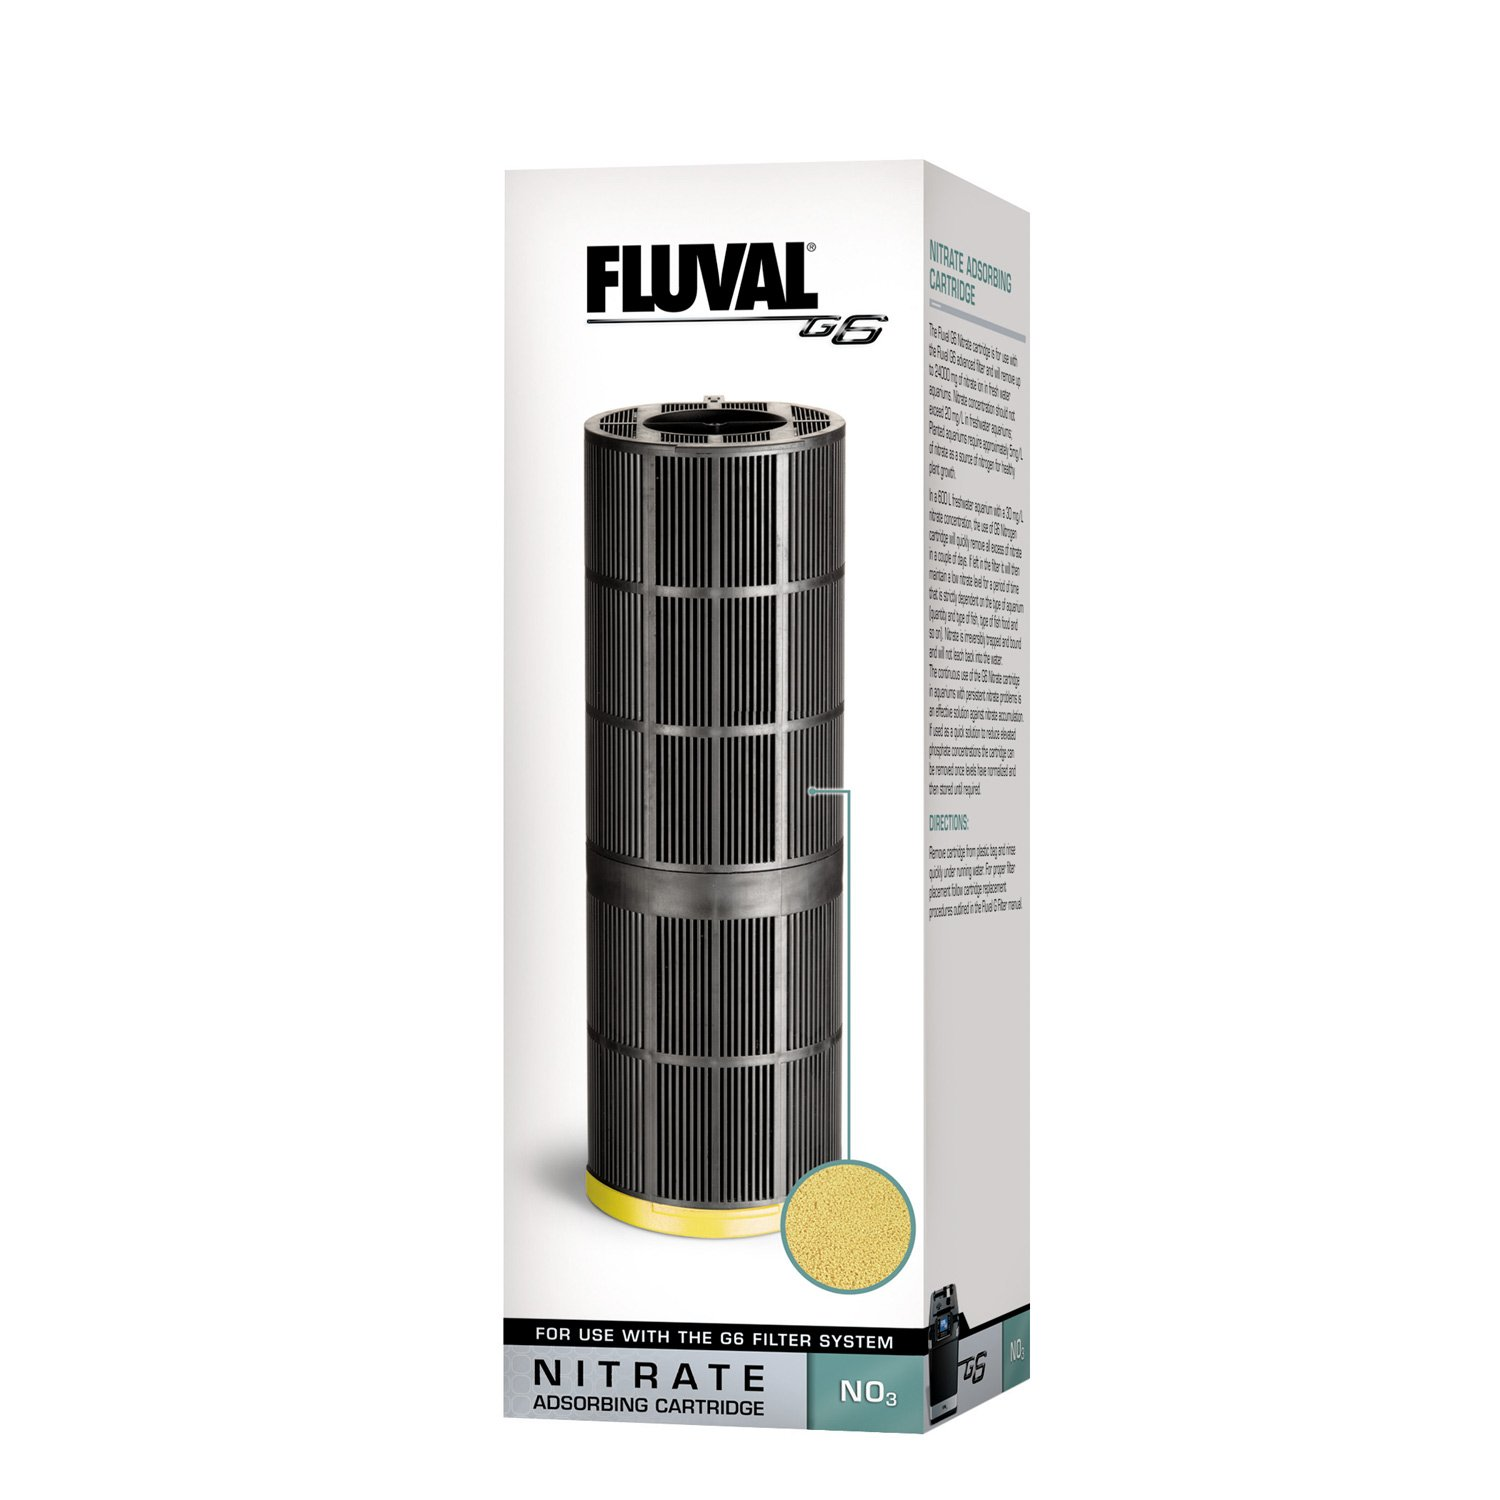 Fluval g6 nitrate filter cartridge petco for Petco fish tank filters